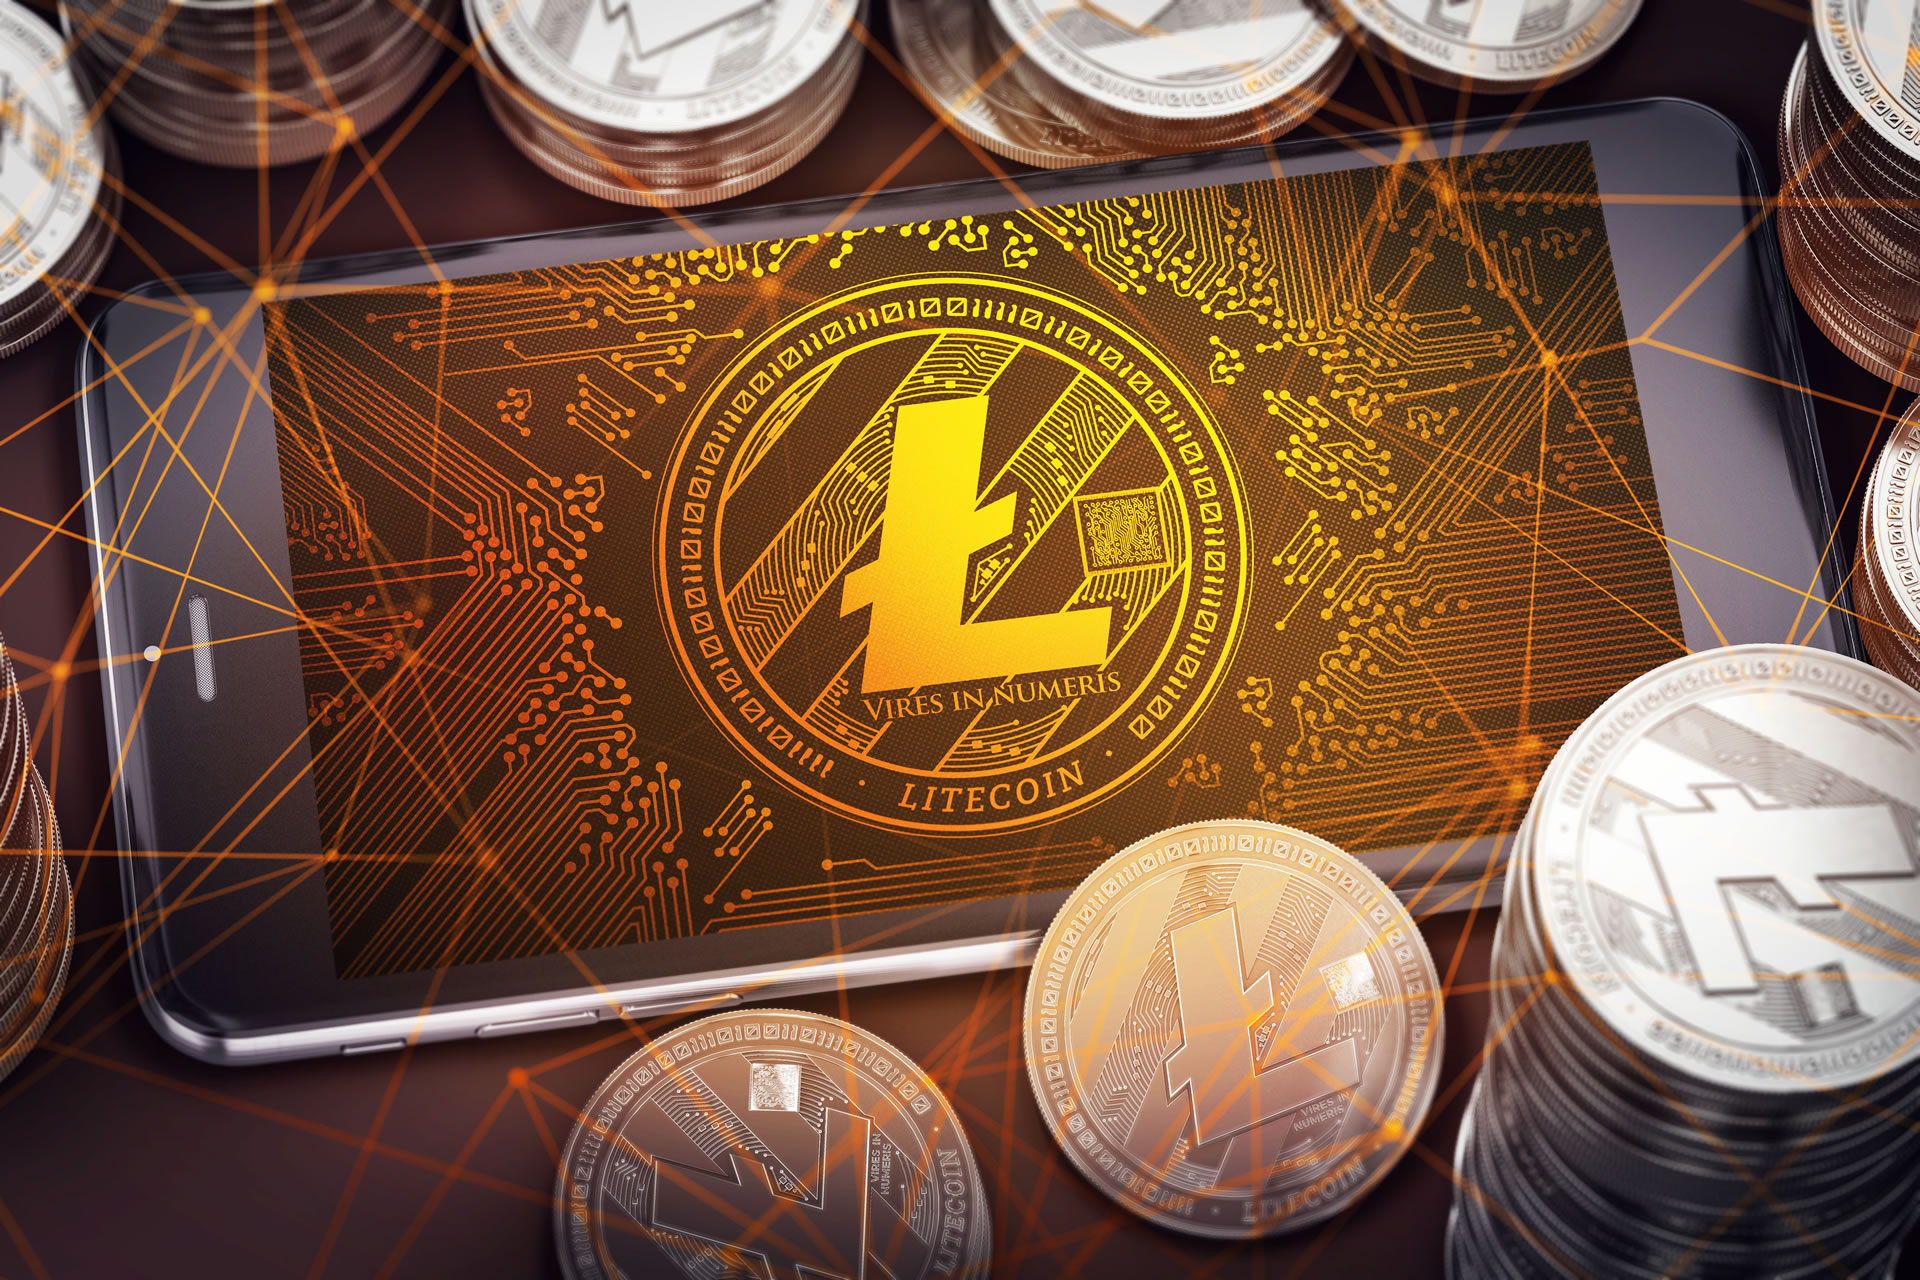 Litecoin briefly flips XRP as 4th largest crypto amid Ripple–SEC spat